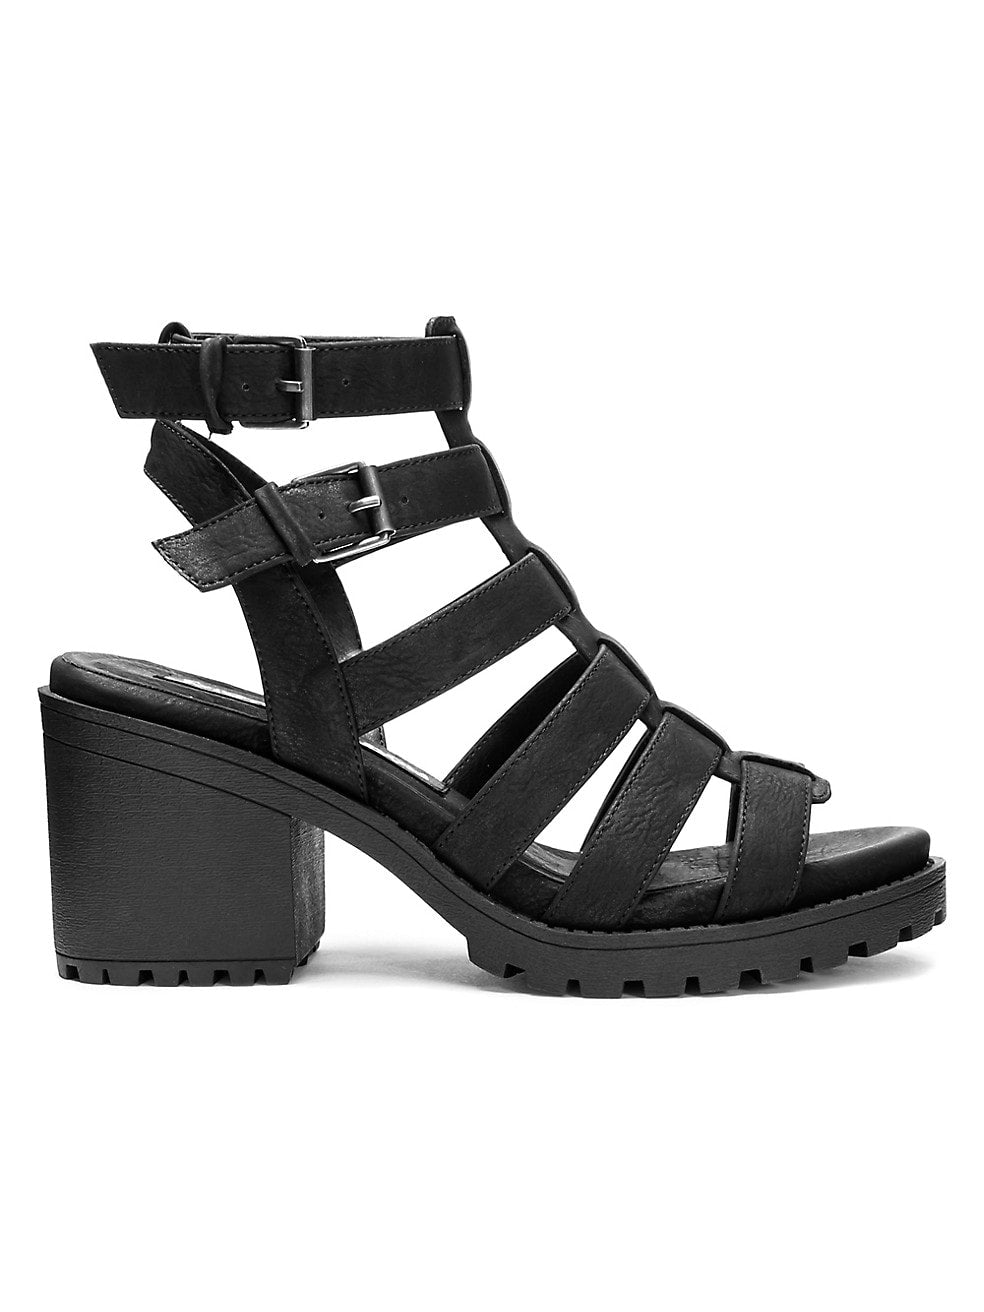 FUN STUFF GLADIATOR SANDALS / BLACK